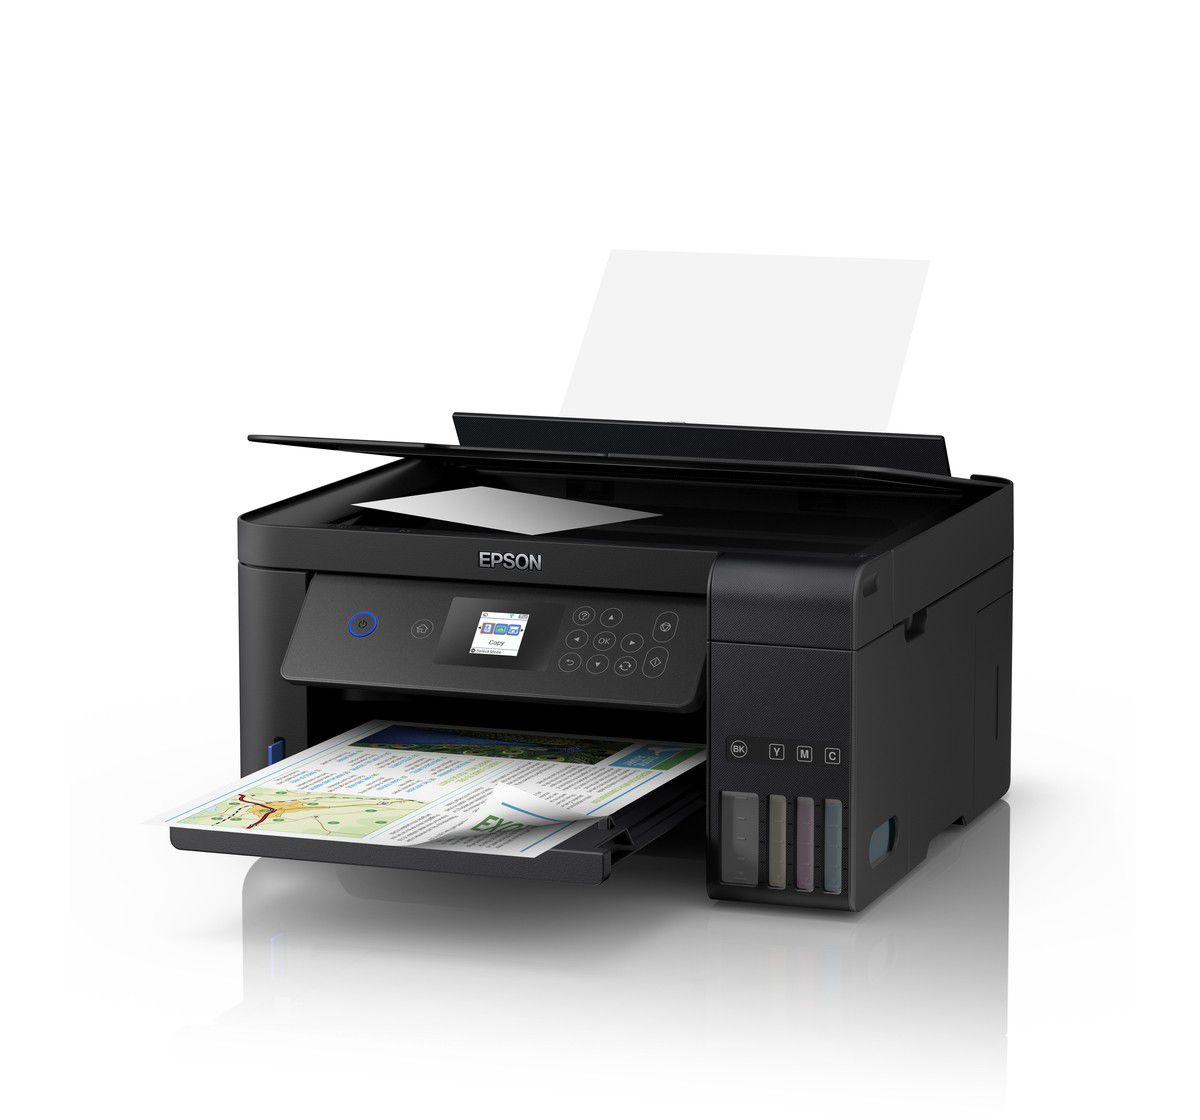 epson ecotank its l4160 3 in 1 wi fi printer buy online in south